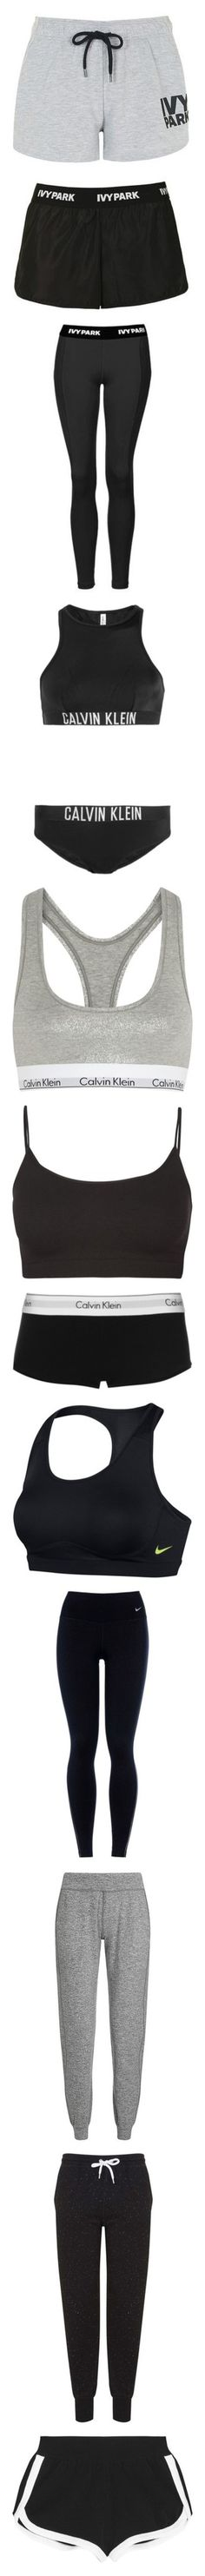 """""""Sport"""" by wieldy ❤ liked on Polyvore featuring activewear, activewear shorts, bottoms, shorts, pants, light grey m, topshop, logo sportswear, black and leggings"""